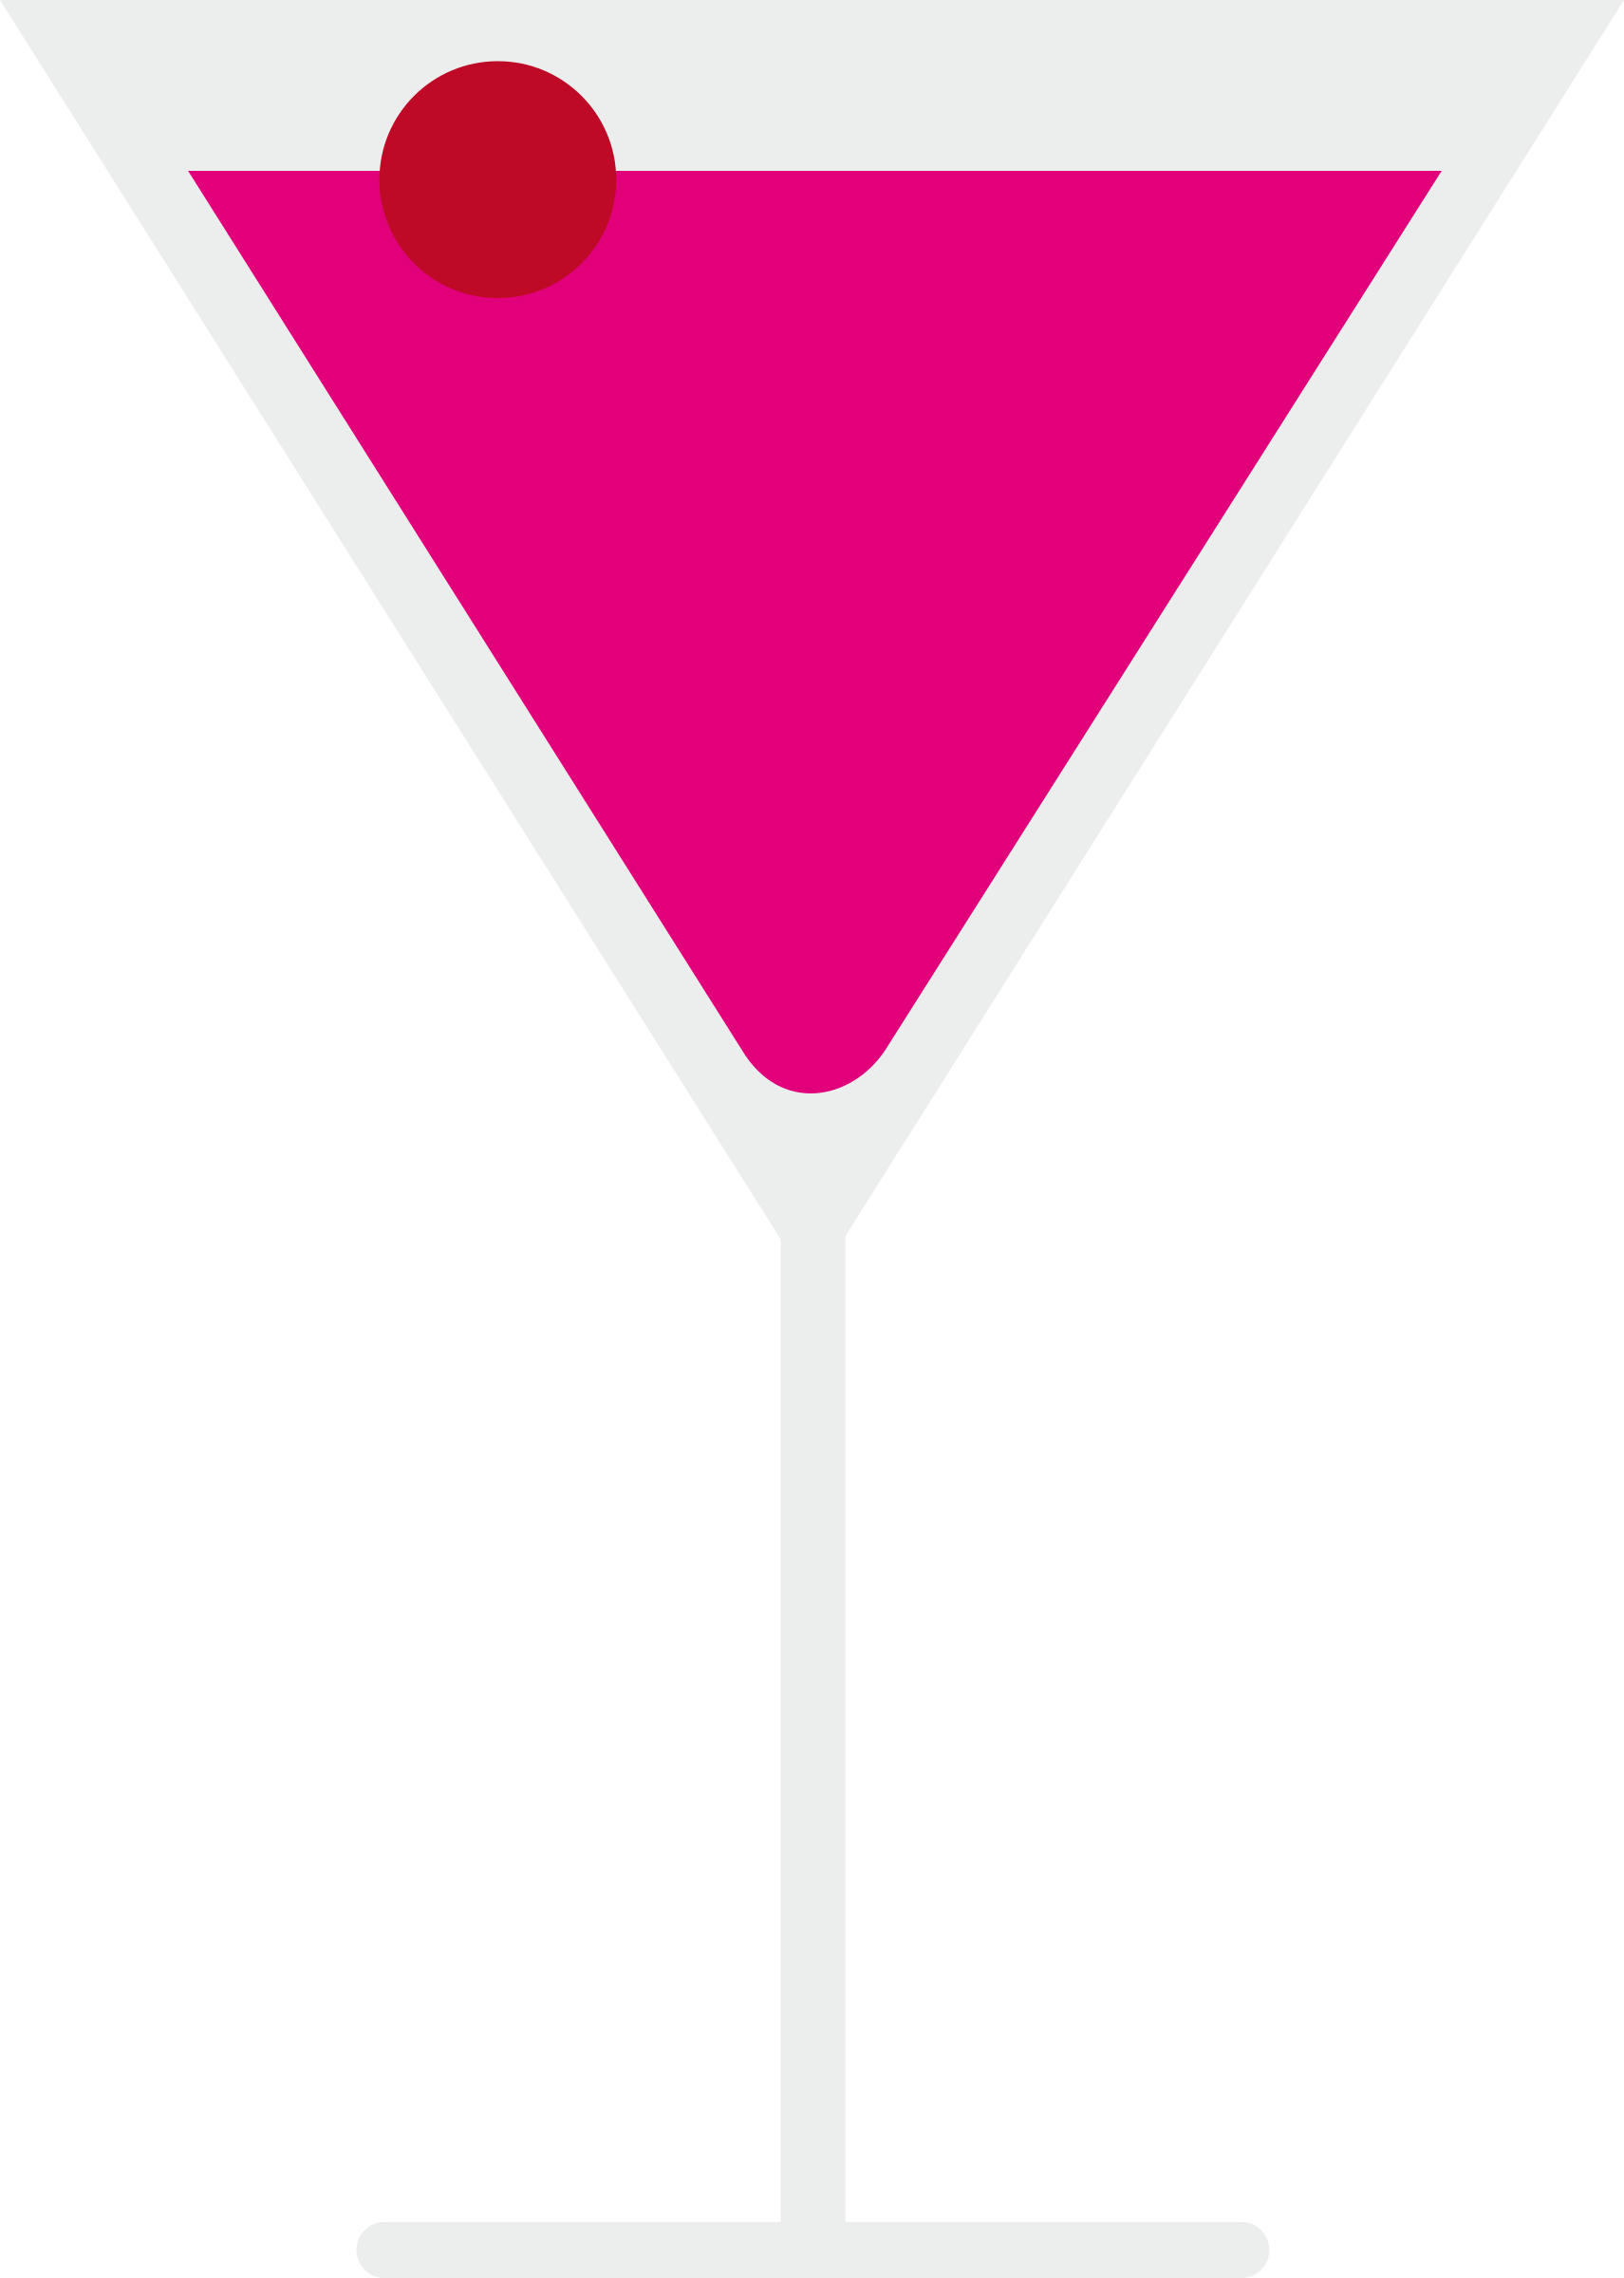 Drinks clipart tropical. Cocktail png image purepng